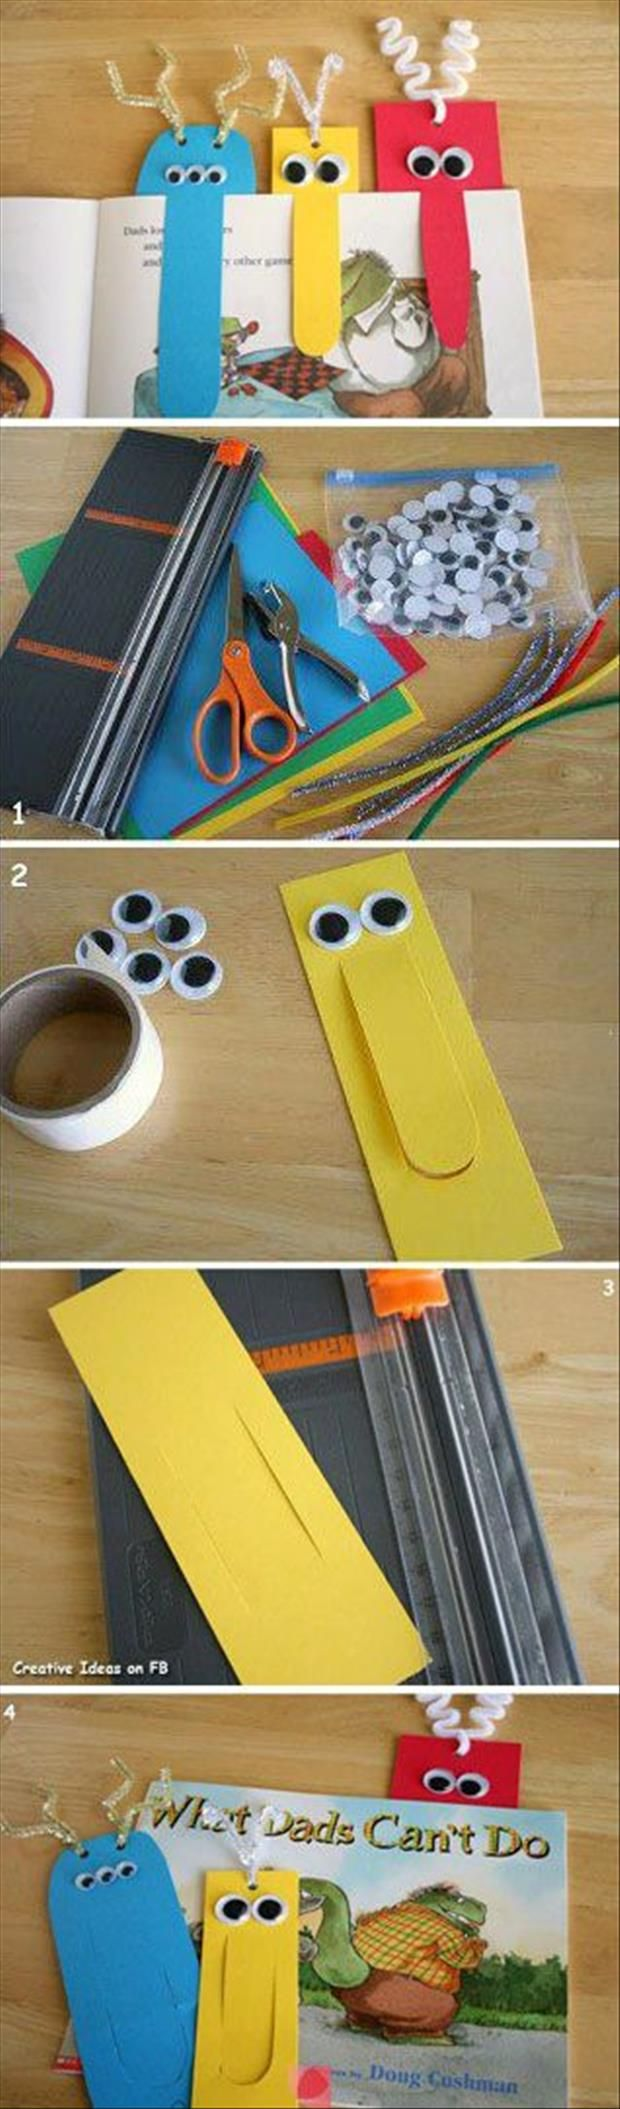 Fun Do It Yourself Craft Ideas - 31 Pics